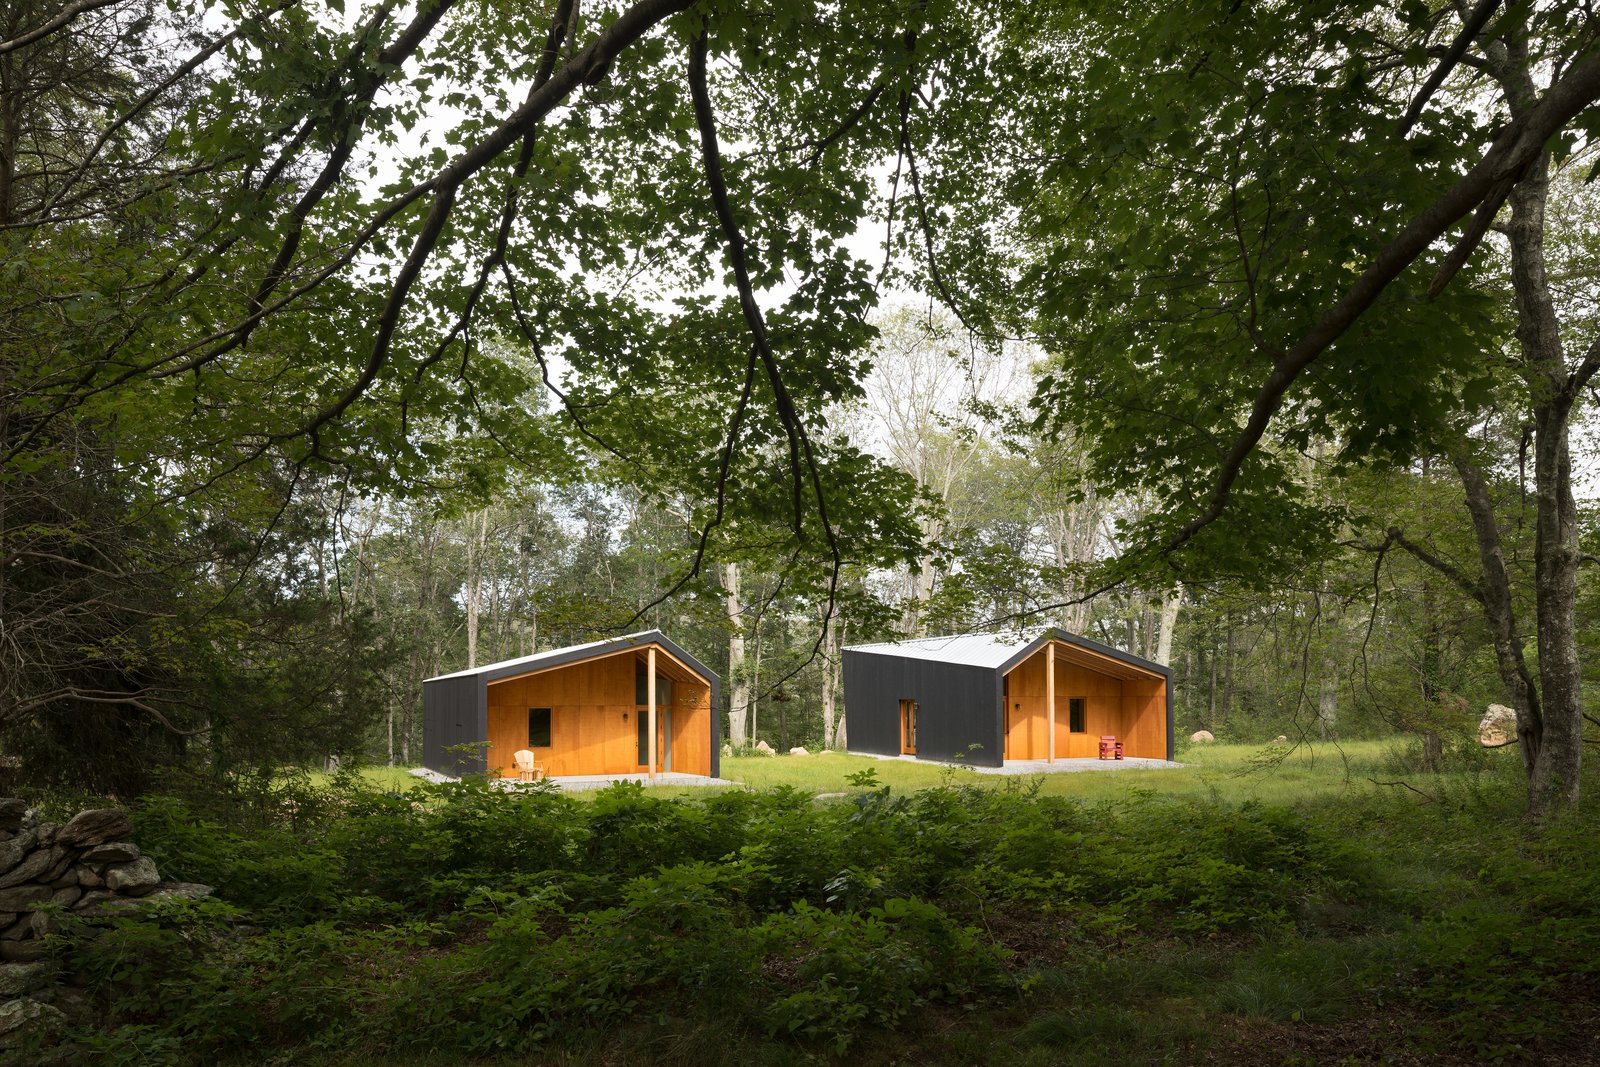 Sited to respect existing site features and topography, the two studios respectfully interact with the subtle tension of the shared space between them shaped by angled walls that frame and celebrate the surrounding countryside.